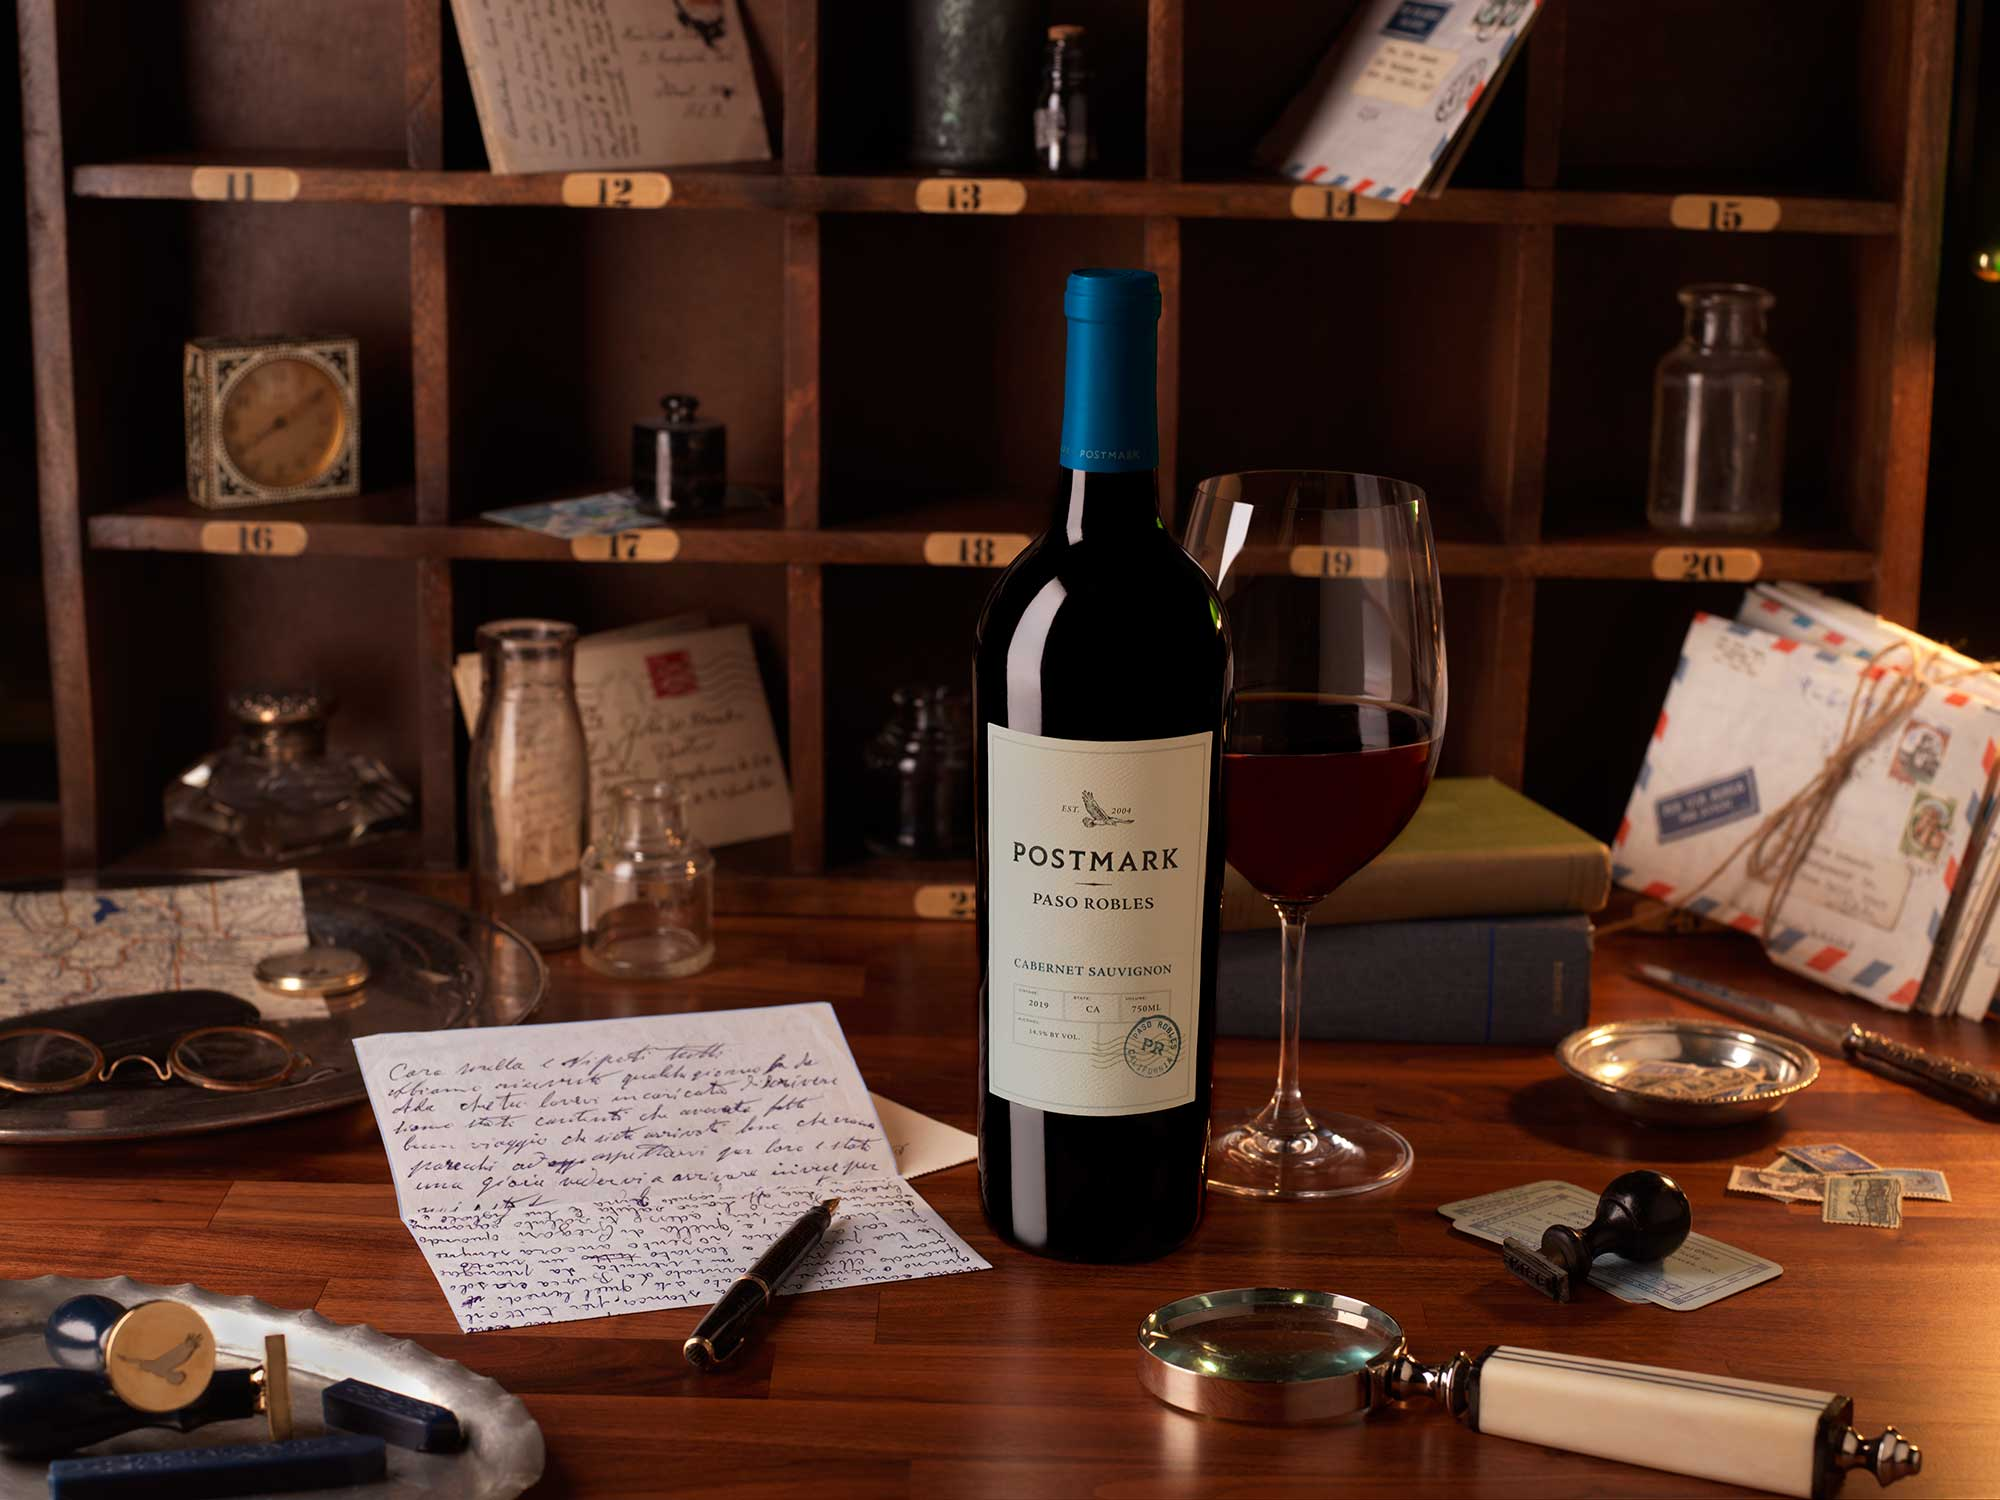 Postmark Wine Bottle and Glass of Paso Cabernet Sauvignon on Desk